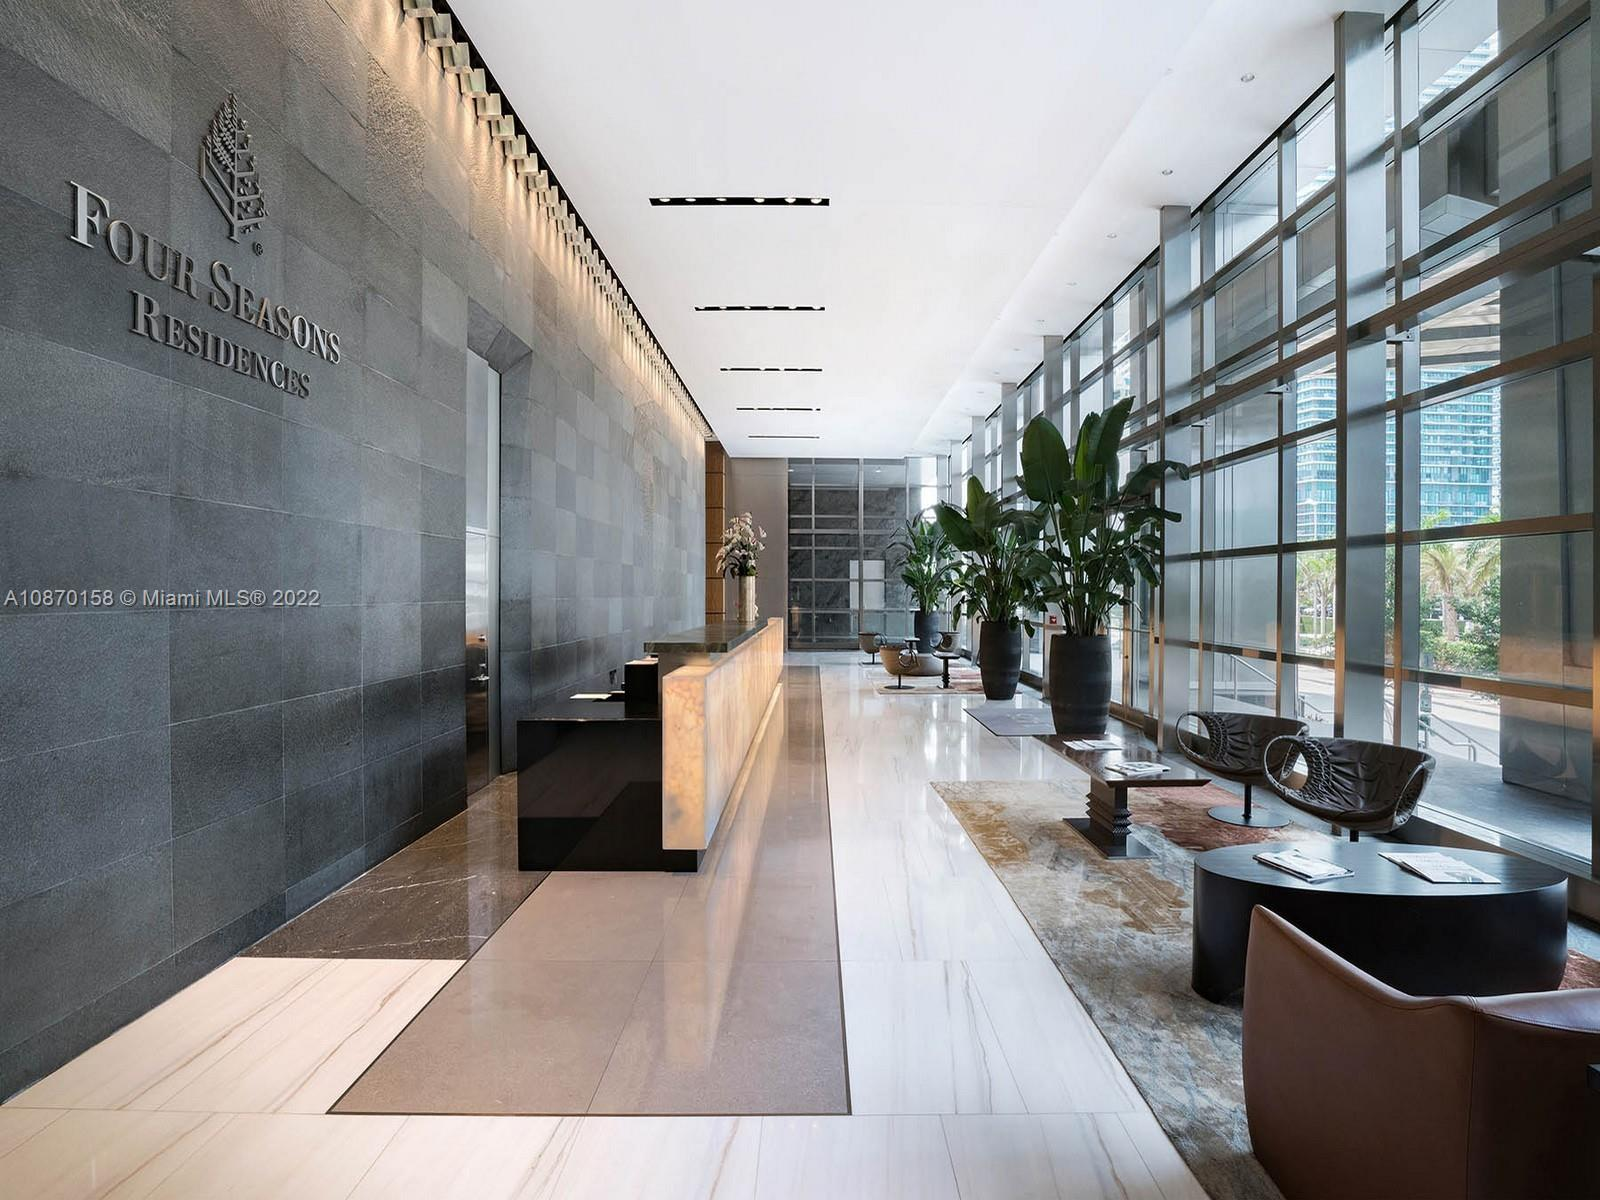 Your jaw will drop as you step into this one-of-a-kind residence in the sky in the heart of Miami.  You will want to gaze forever at the unobstructed, panoramic views of the crystal blue waters of Biscayne Bay. This stunning and luxurious unit was designed at the hands of famed interior designer, Luis Bustamante. No detail was spared with this custom renovation from the bar and ceiling which were imported from Spain, to the stunning Loro Piana wallpapers, you will only be surrounded by the highest quality finishes. Experience the epitome of luxury living at The Four Seasons Residences with the 5 star amenities which includes a spectacular pool, 2 restaurants, 24/7 in-room dining, Equinox memberships, and much more, but most importantly, the most exceptional service at your fingertips.